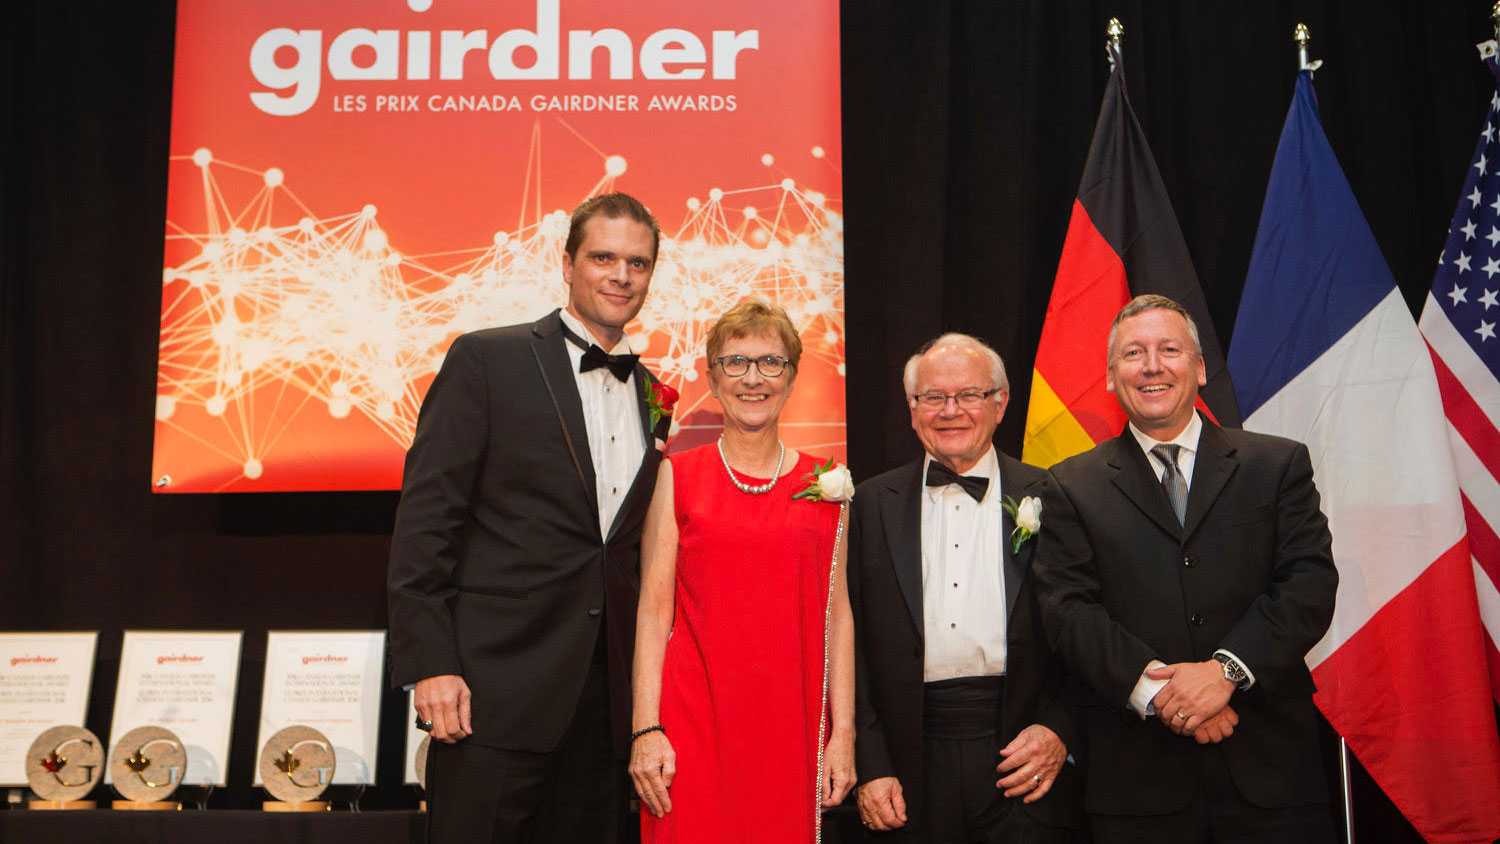 Dr. Rodolphe Barrangou with Dr. Janet Rossantand, Gairdner president and scientific director; Dr. Lorne Tyrrell, chair of the Gairdnerboard of directors; and CALS Dean Richard Linton at the award ceremony in Toronto.